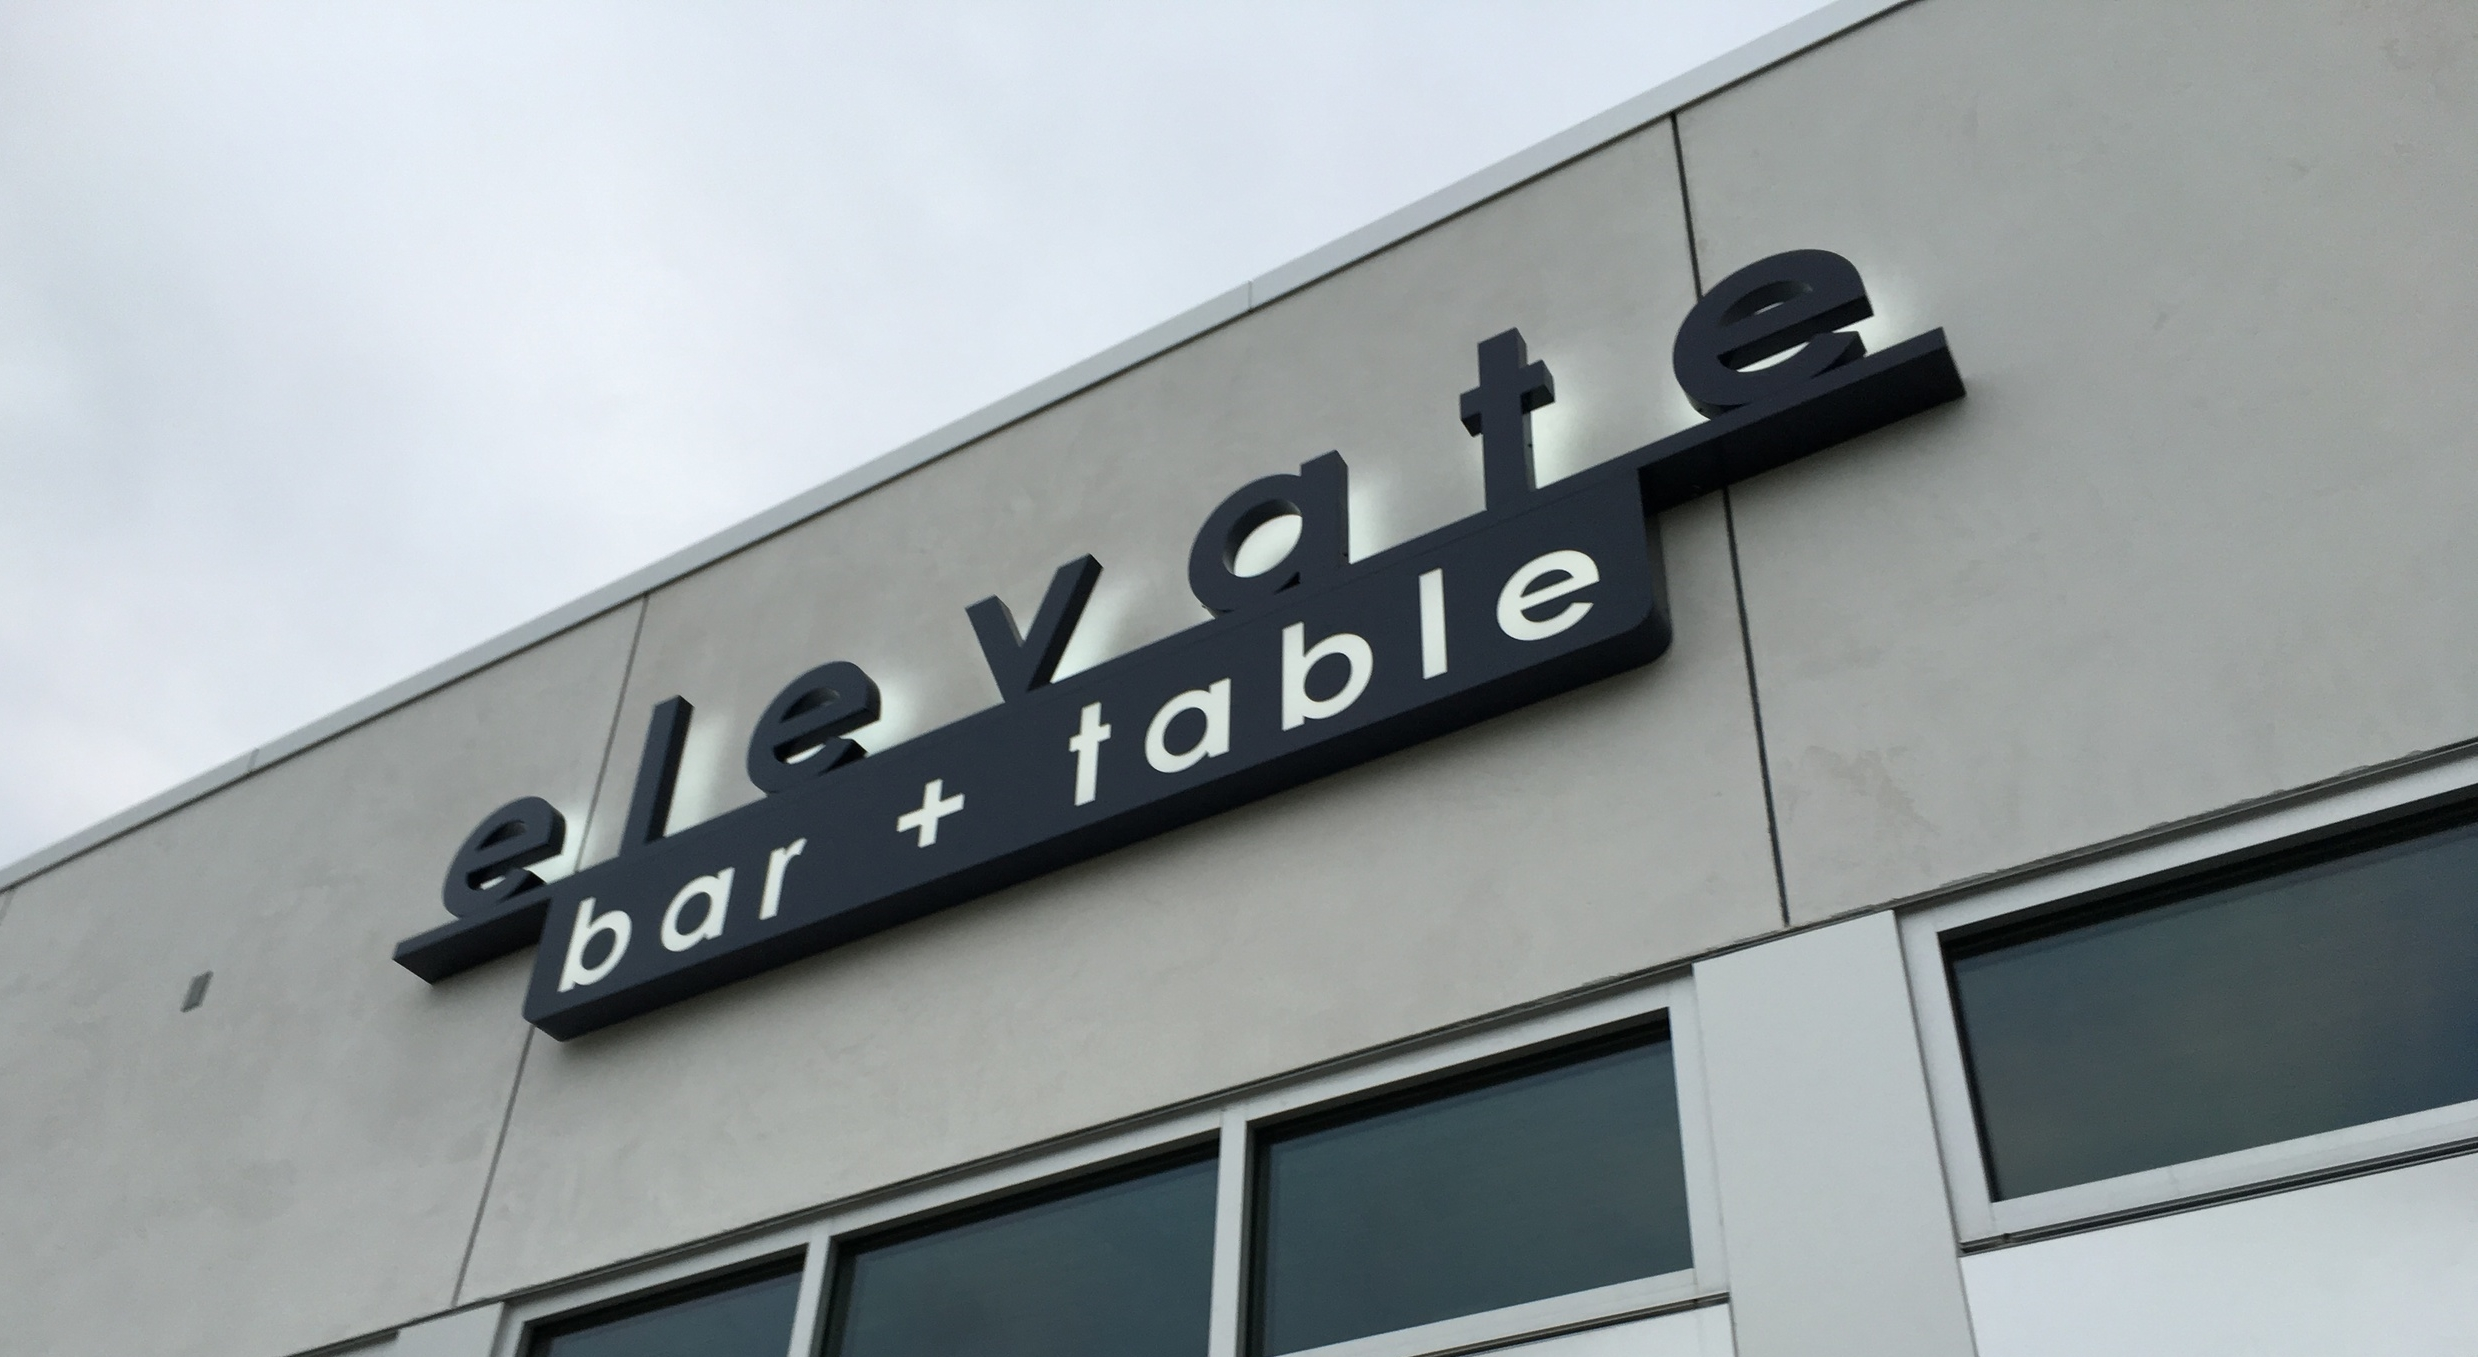 Signage design by Colorspace, with fabrication and install by Sign Crafters.